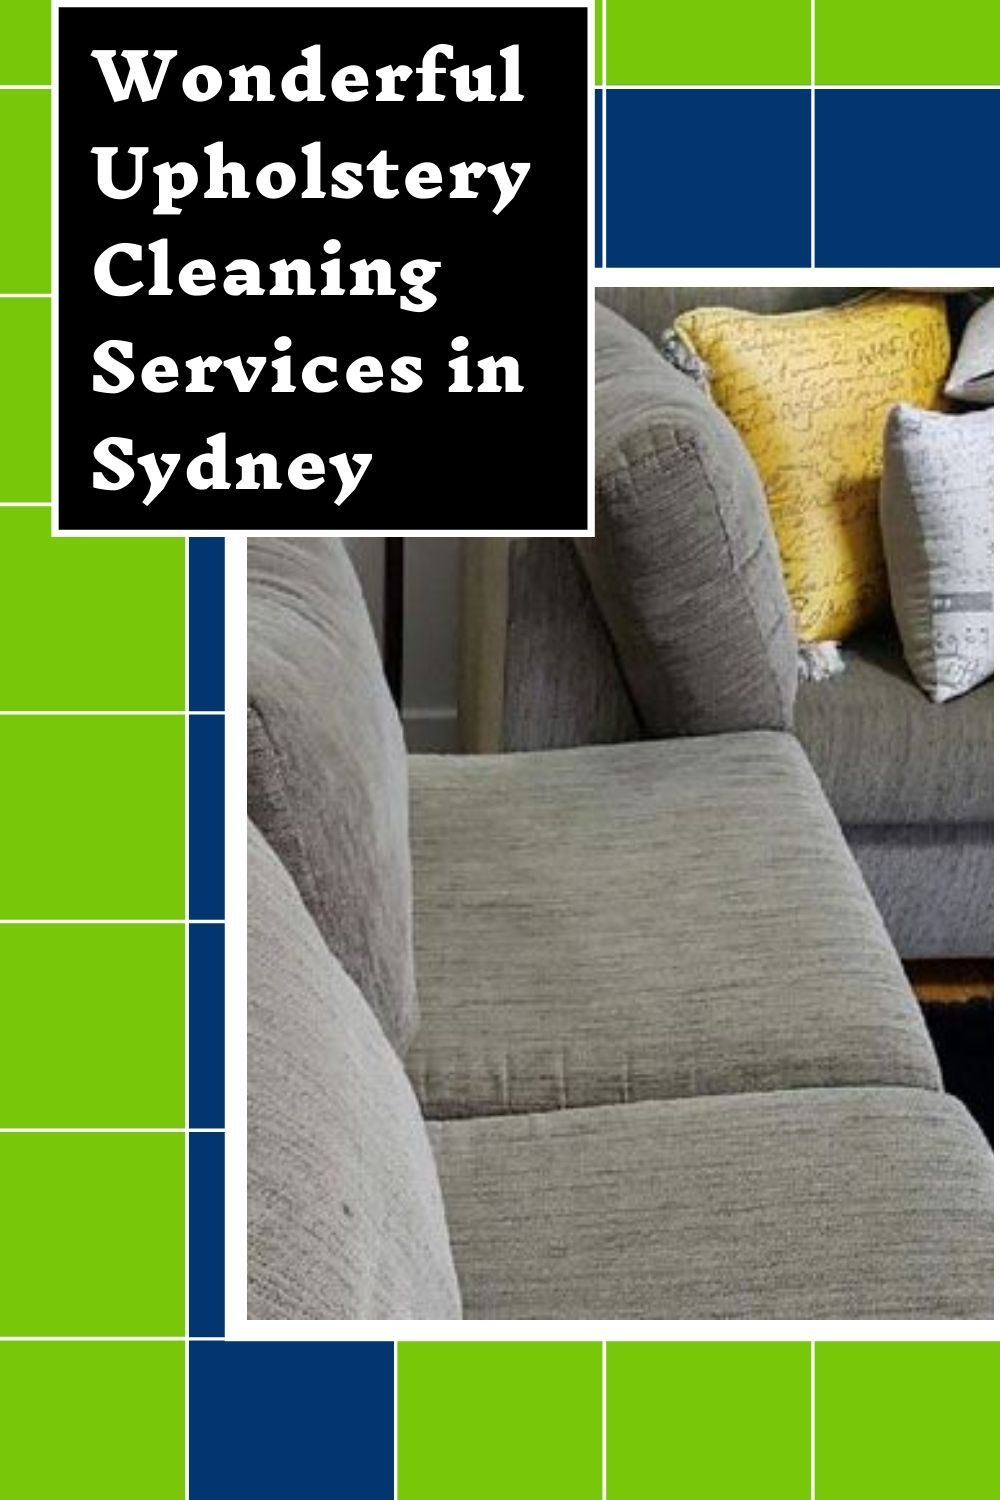 Instant upholstery cleaning services in sydney in 2020